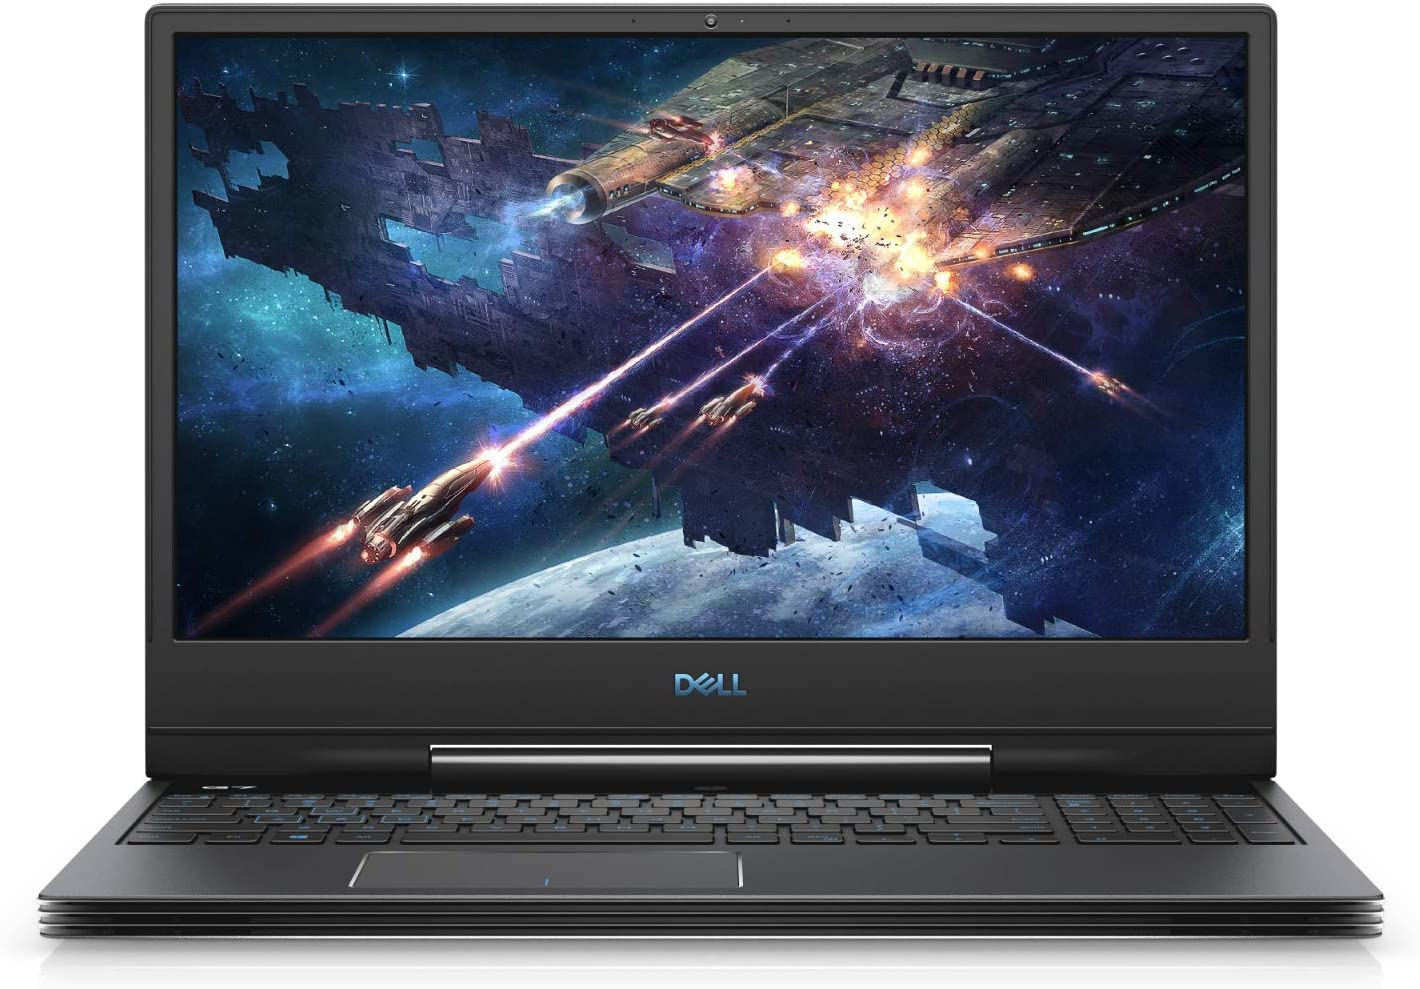 "2019 Dell G7 15.6"" FHD Gaming Laptop Computer, 9th Gen Intel Hexa-Core i7-9750H up to 4.5GHz, 16GB DDR4 RAM, 1TB HDD + 256GB PCIe SSD, GeForce GTX 1660 Ti 6GB, 802.11AC WiFi, Bluetooth 5.0, Windows 10"